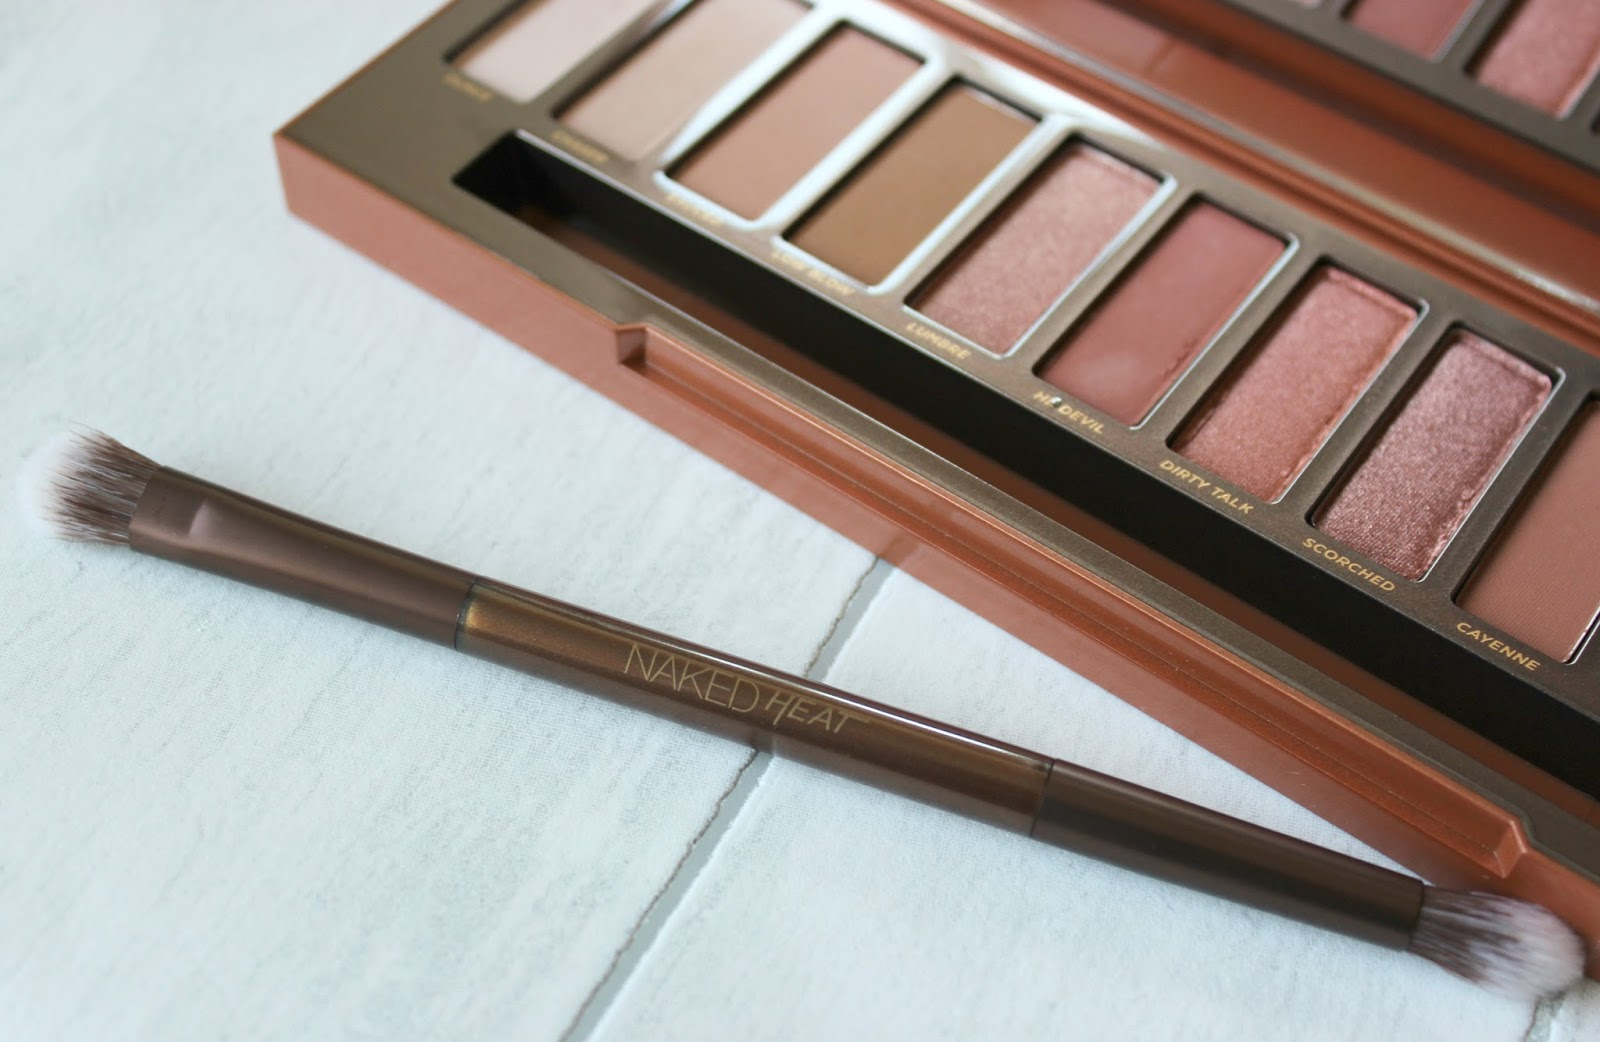 REVIEW: Urban Decay Naked Heat Palette - Time To Put My